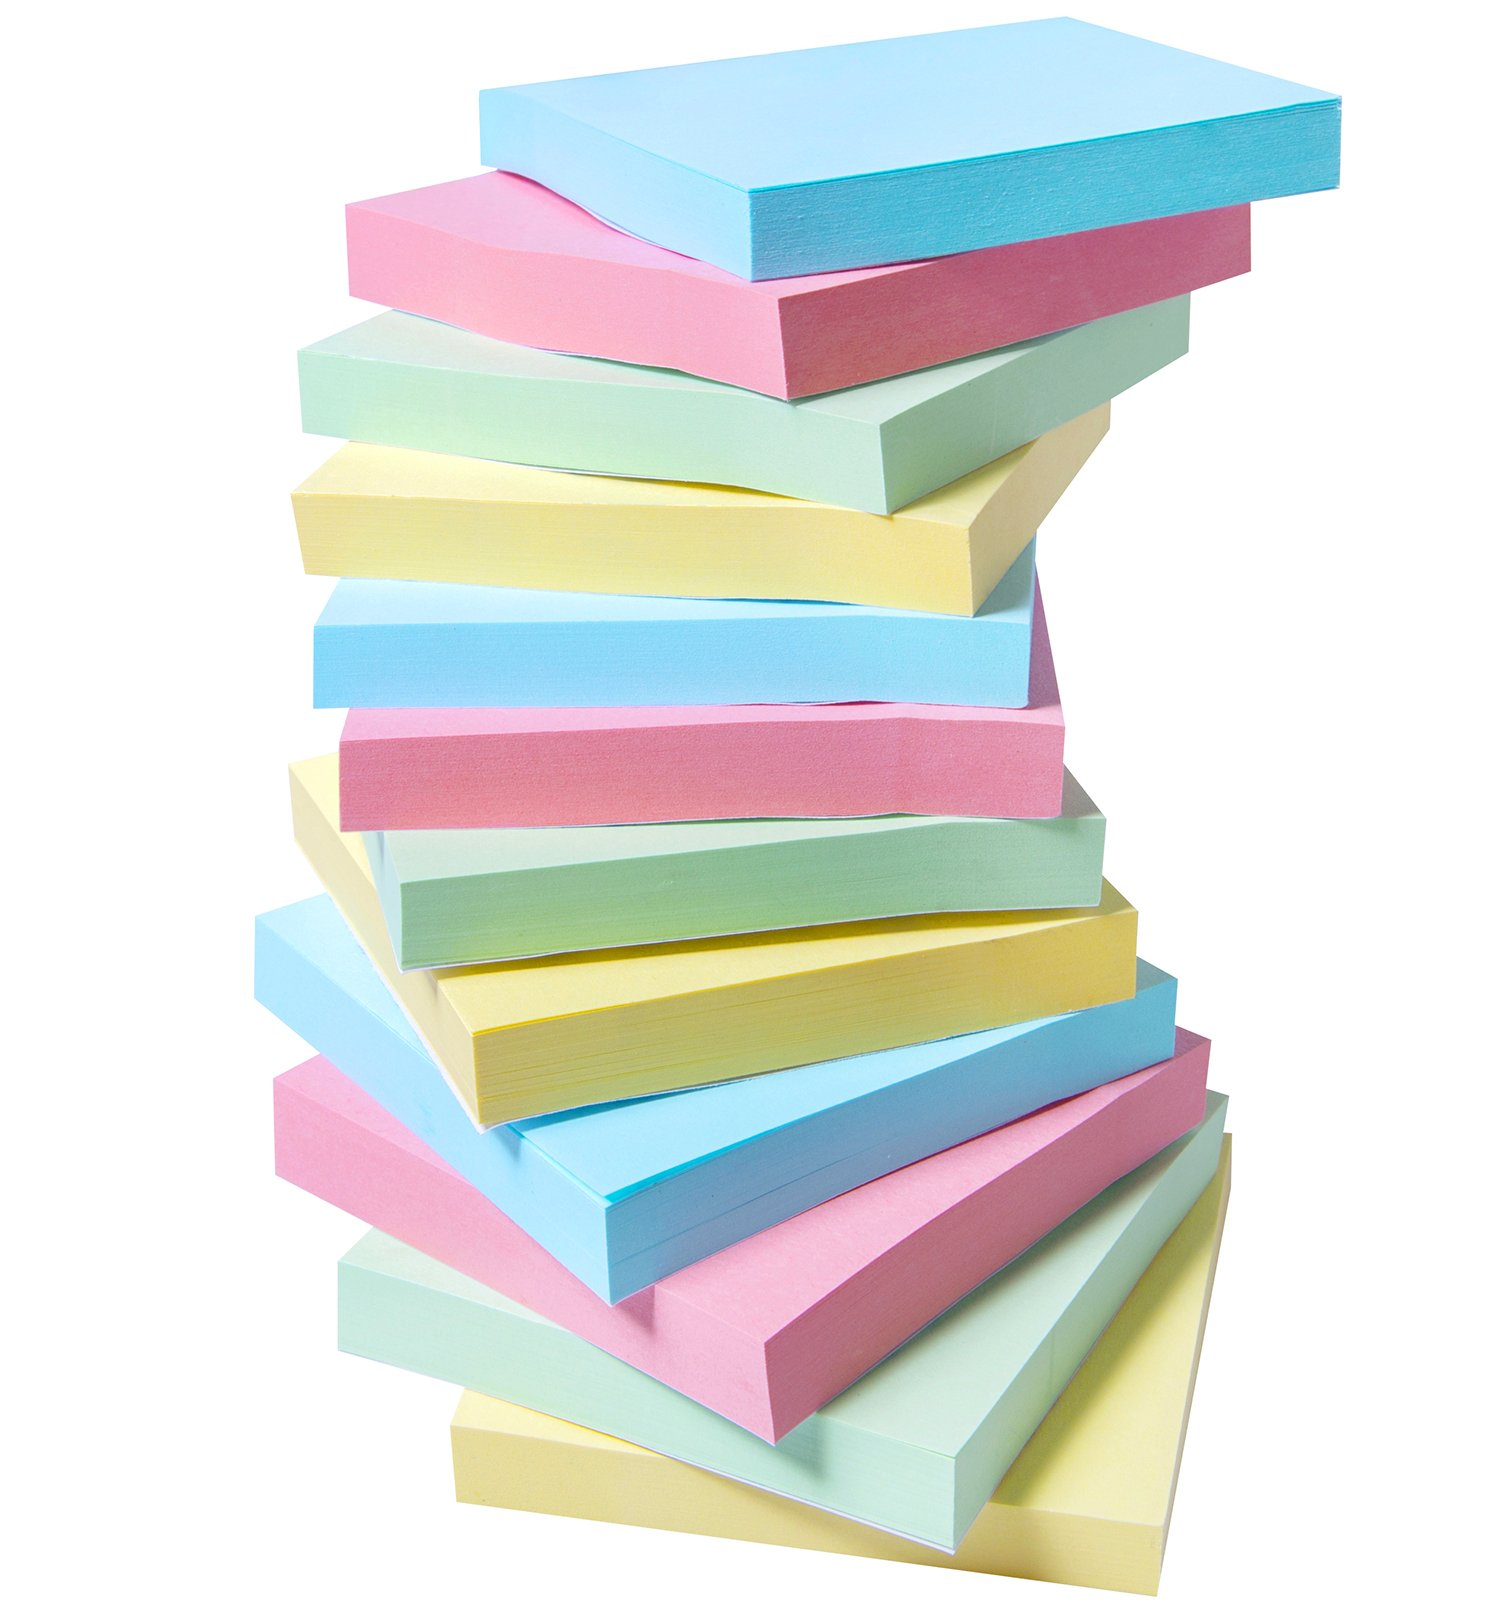 12 Pads Sticky Notes, 3x3 Inch Self-Stick Notes, 100 Sheets Per Pad, Colored Adhesive Notes with 4 Bright Color for Home,School,Office